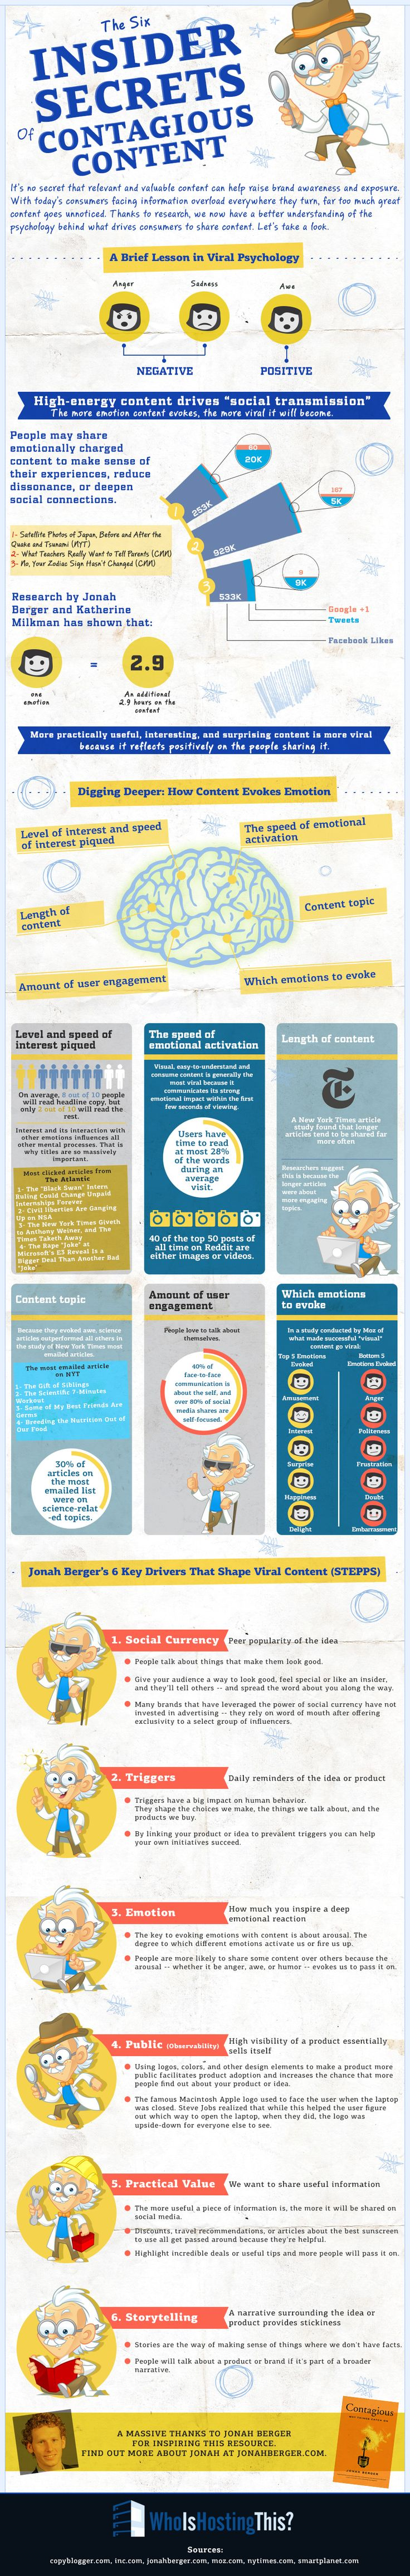 A very interesting #content #marketing #infographic -The Insider Secrets of Contagious Content